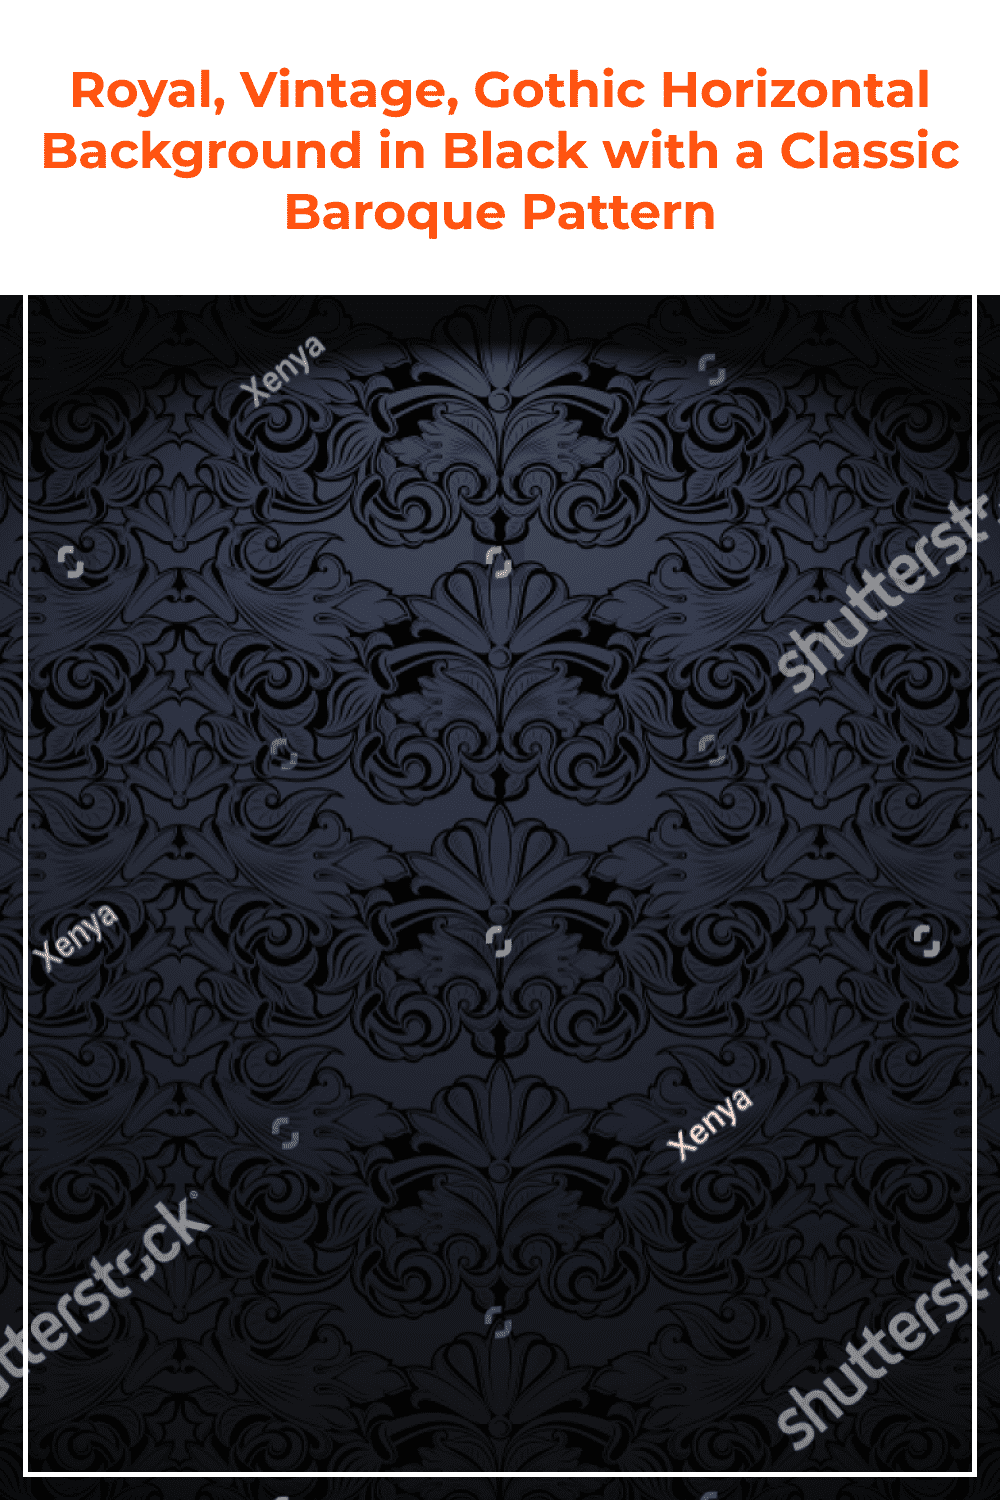 Gothic horizontal background in black with a classic Baroque pattern.